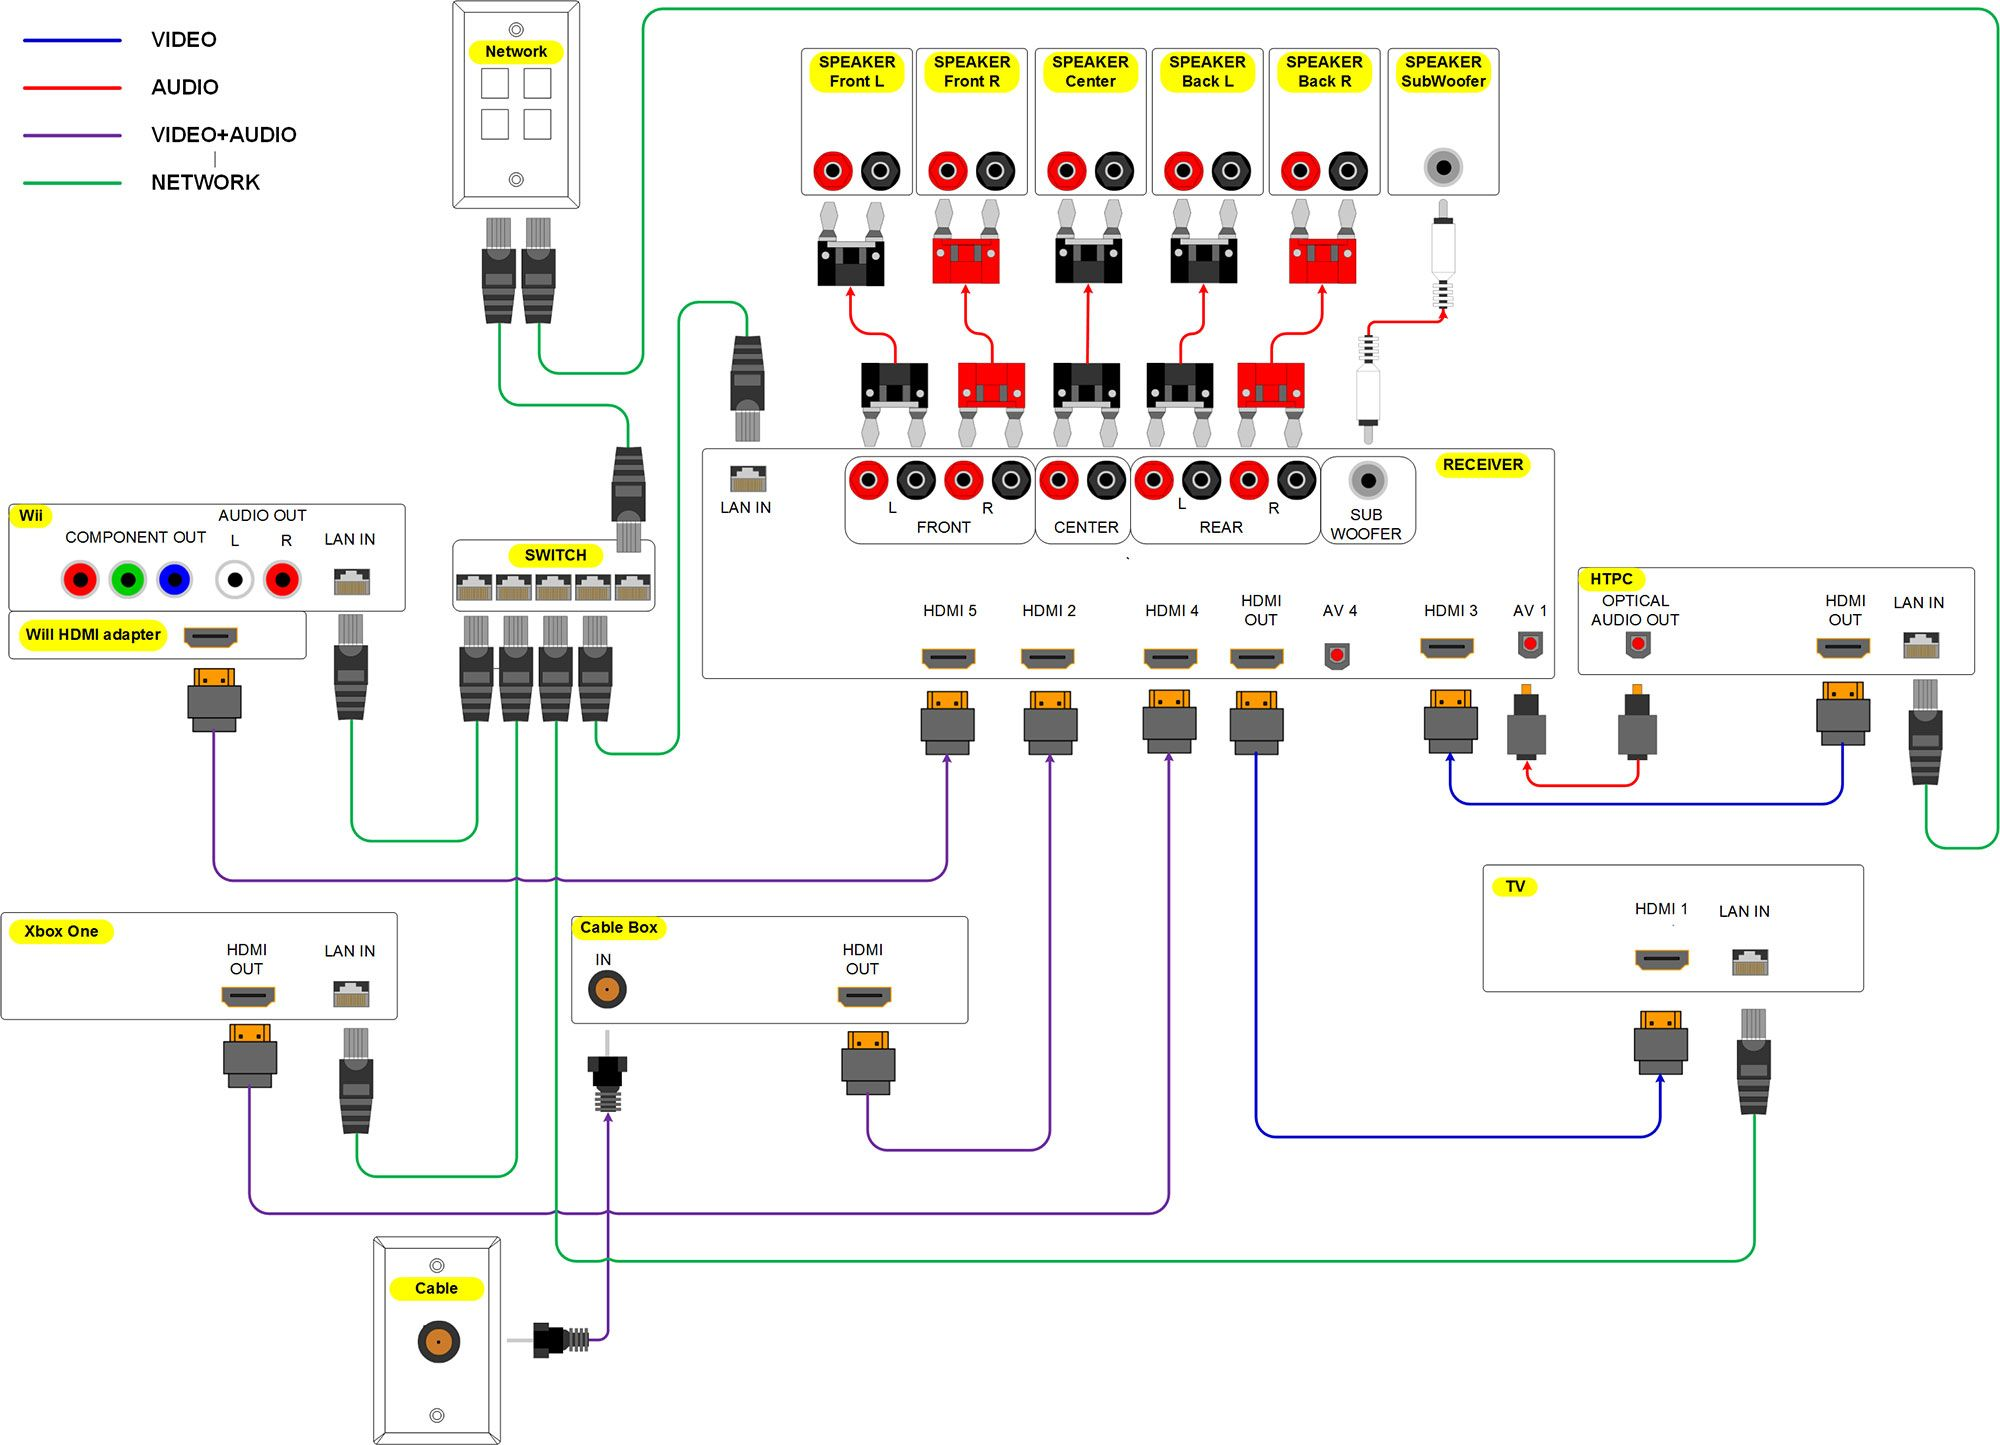 home theater wiring diagram click it to see the big 2000 pixel wide rh pinterest com home theater hookup diagrams home cinema wiring diagram